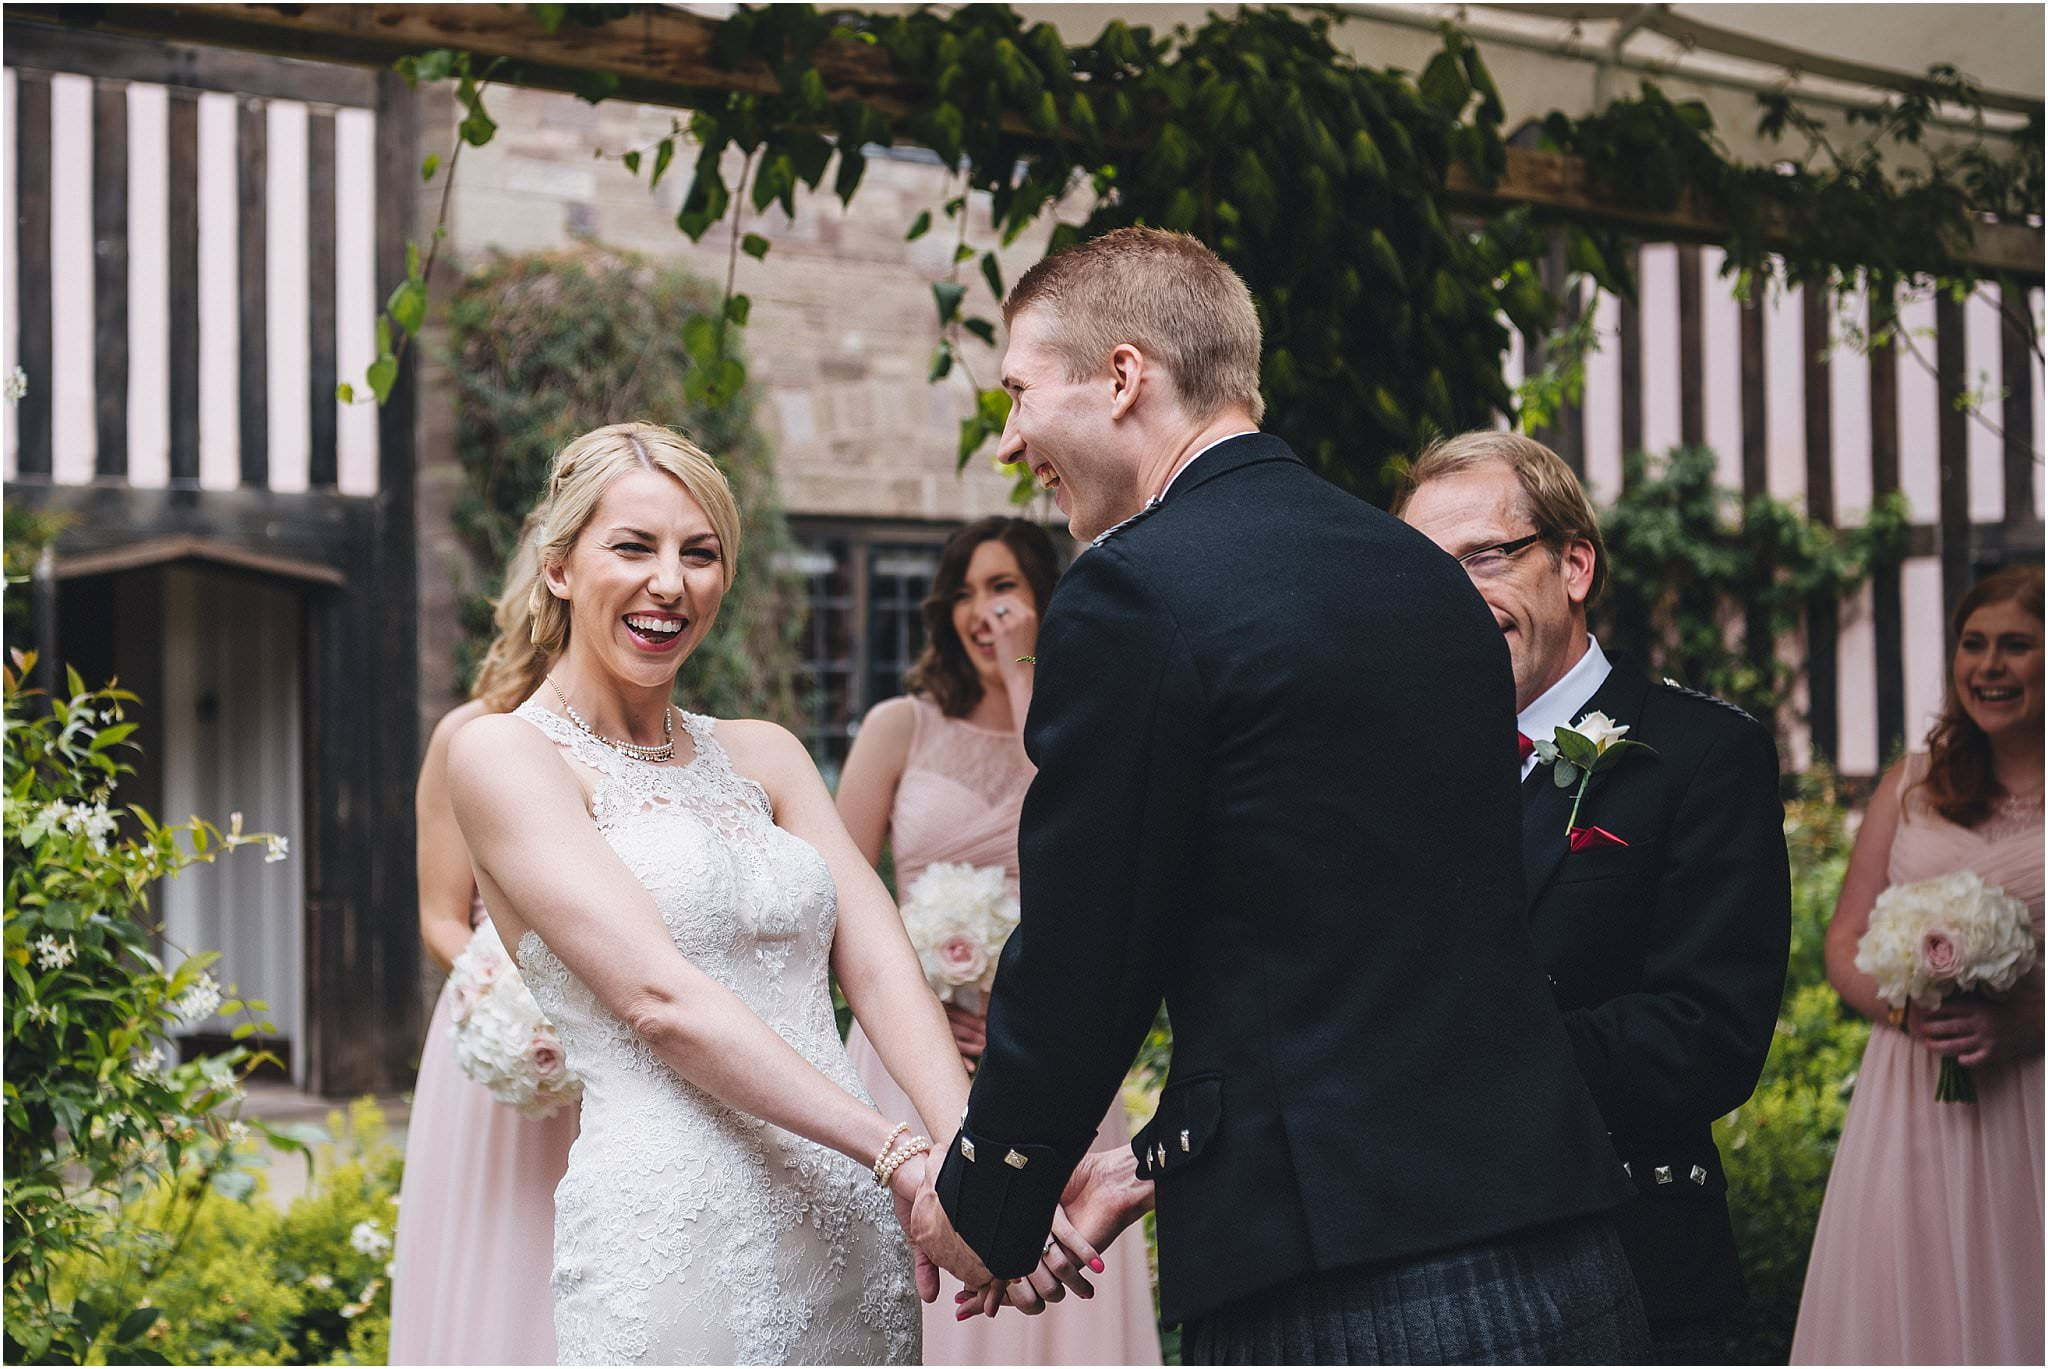 Brinsop courtyard wedding ceremony